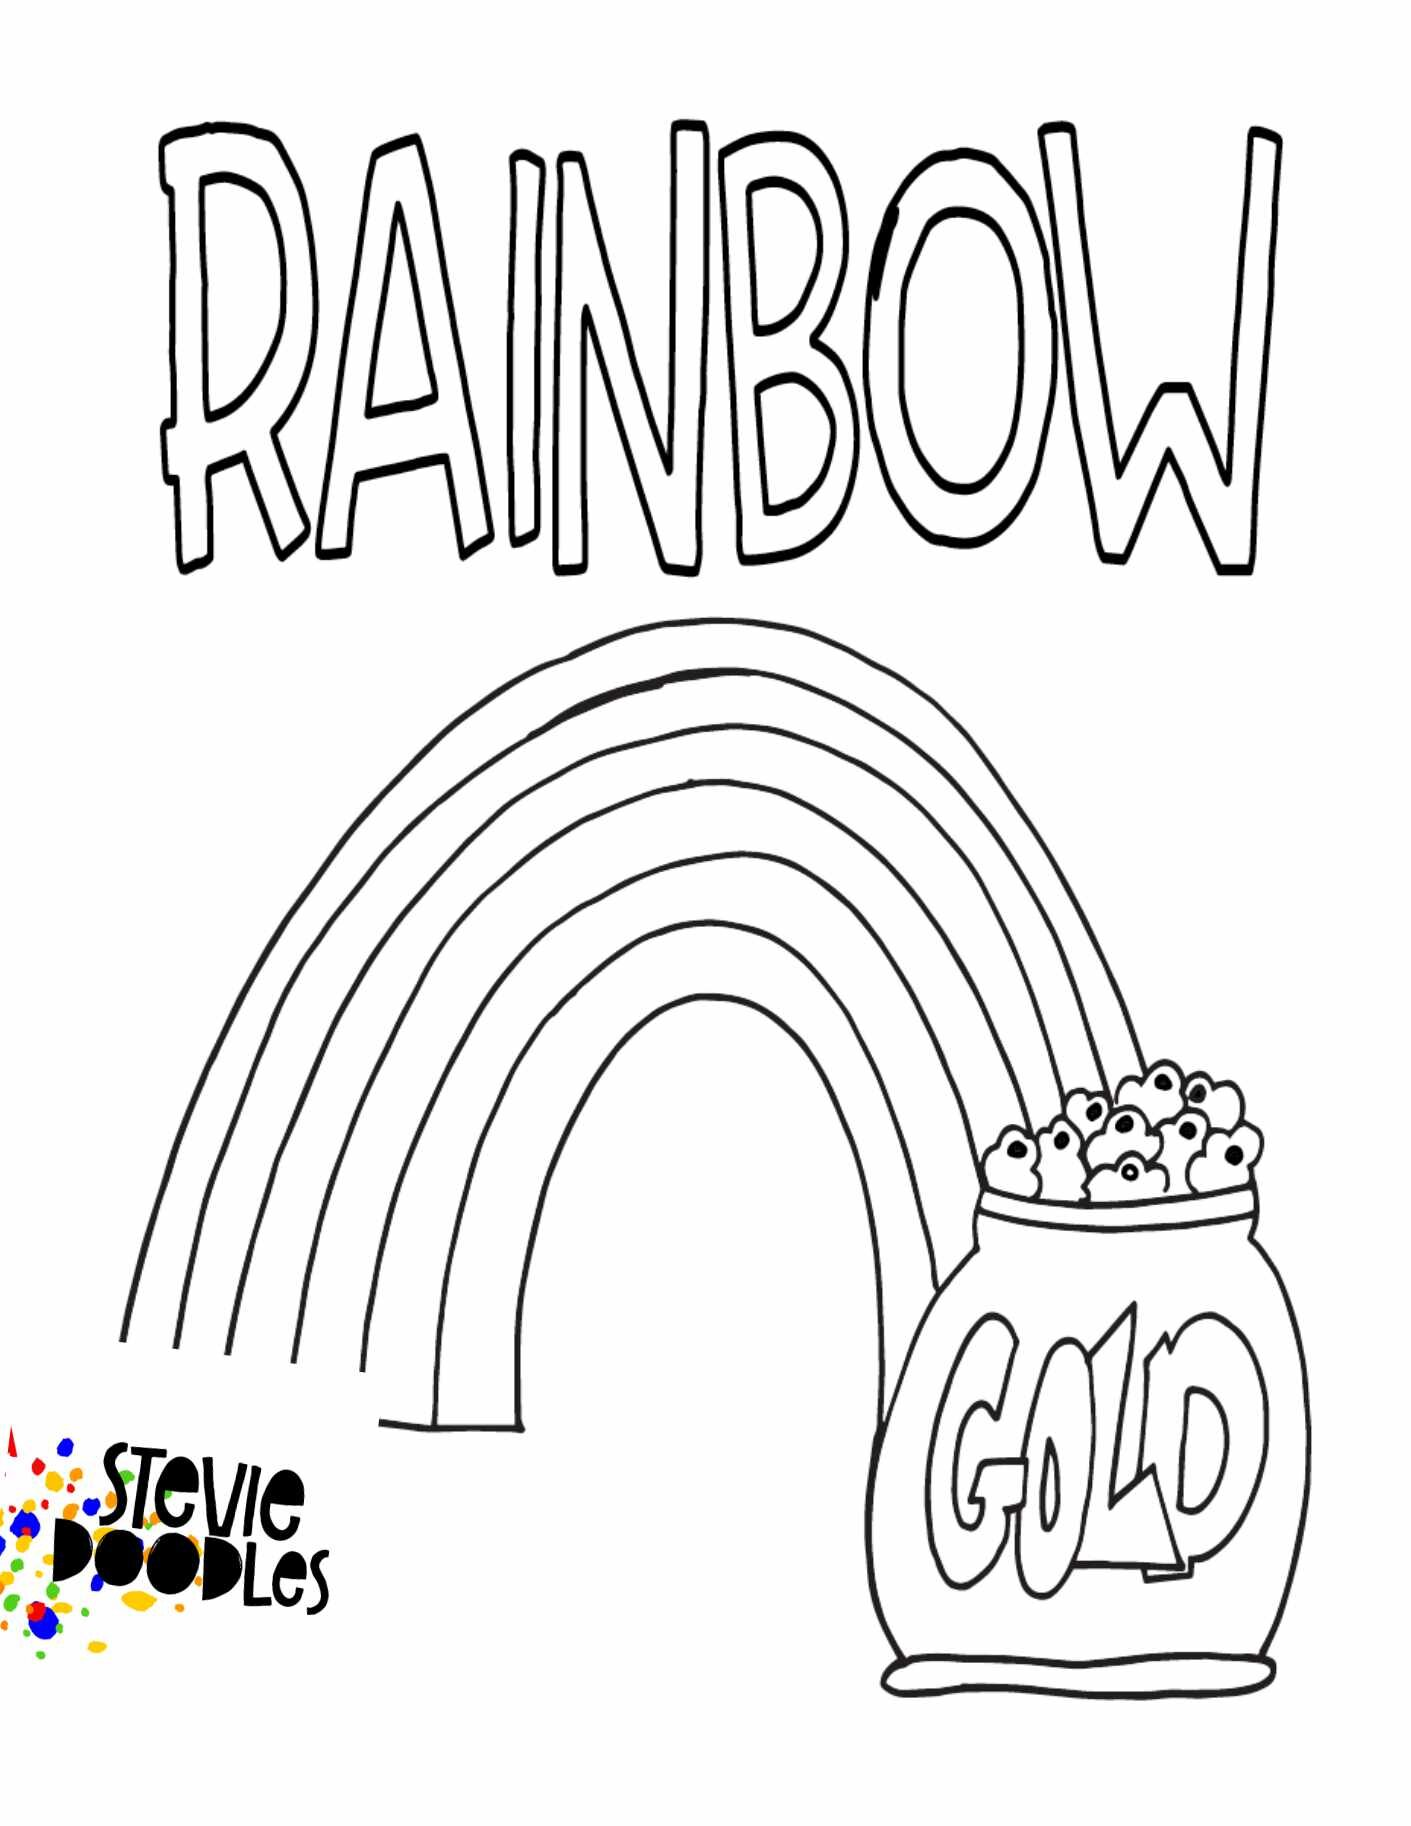 Rainbow With Gold Free Printable Coloring Page Stevie Doodles Free Printable Coloring Pages